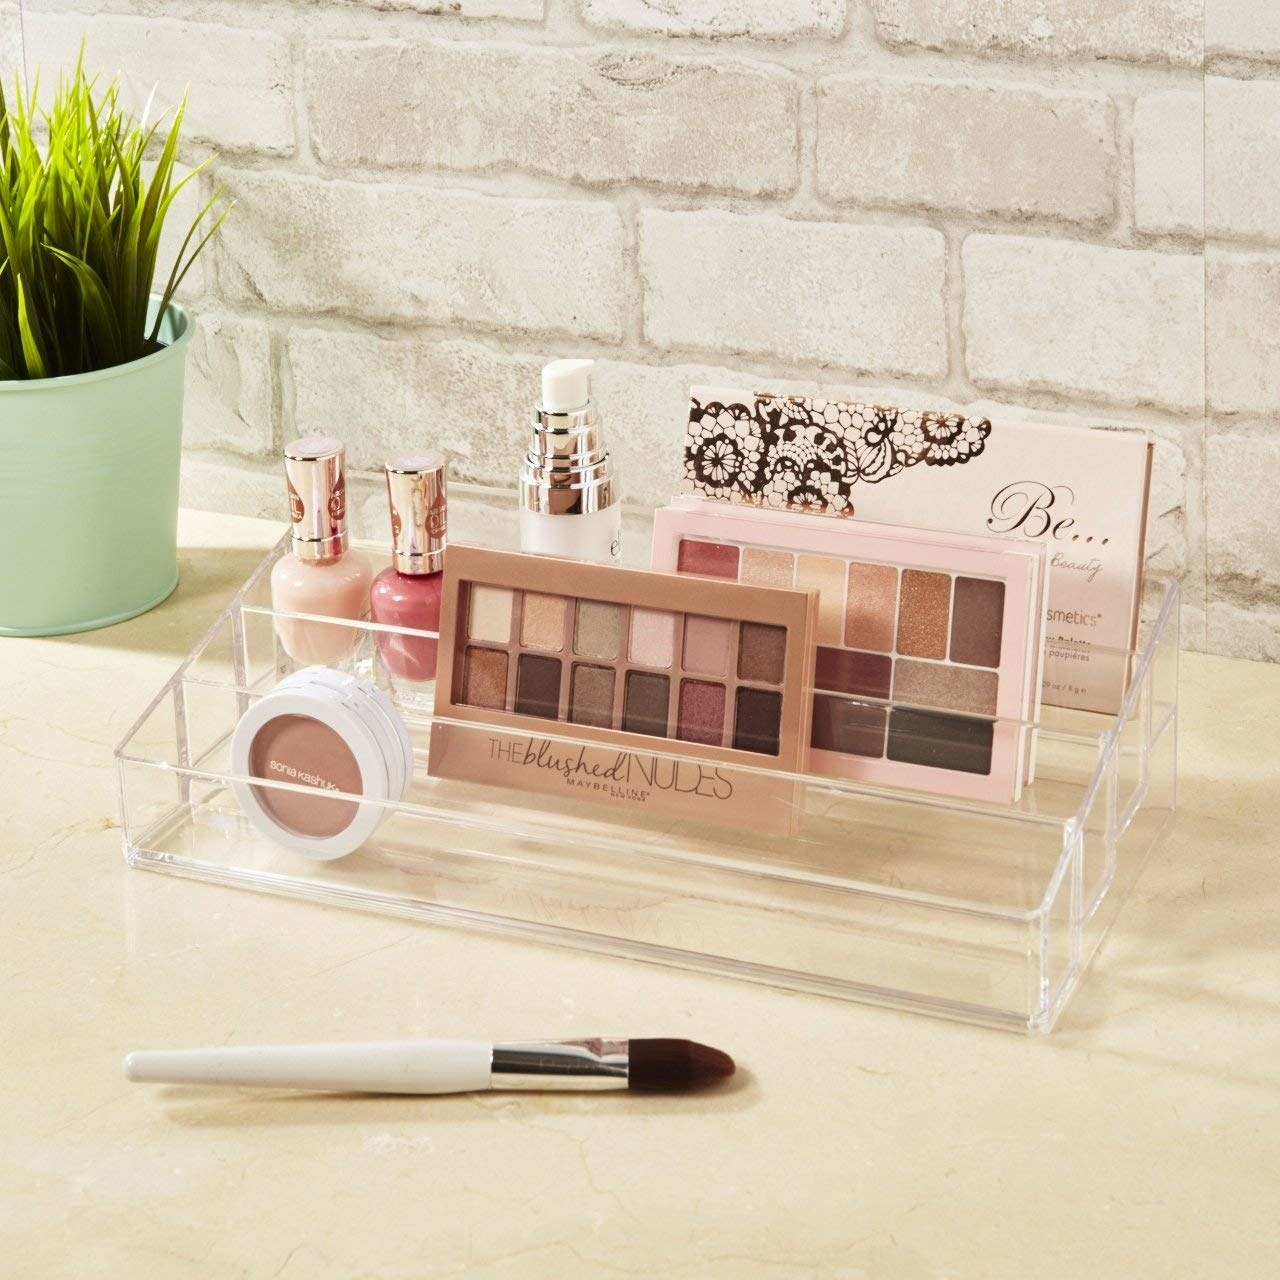 """It's 12 inches long (by six inches wide), so it can fit more products than you expect. It could work no matter how much makeup you have: if you're a minimalist, it can hold just the few products you use most; if you have every palette under the sun, you may want more than one! Promising review: """"I was looking for something that would fit my Morphe palettes upright, not on their sides. This works perfectly! It fits thick palettes like the Tarteist contour palette, medium-thick palettes like the Morphe blush palettes and the Coastal Scents hot pot palette, and thin palettes like Lorac Mega Pros. If you have a lot of makeup, I wouldn't hesitate to buy this. I'm sure it will fit anything you have. This organizer is just what I was looking for, and at the right price!"""" —eXampleGet it on Amazon for $12.99."""